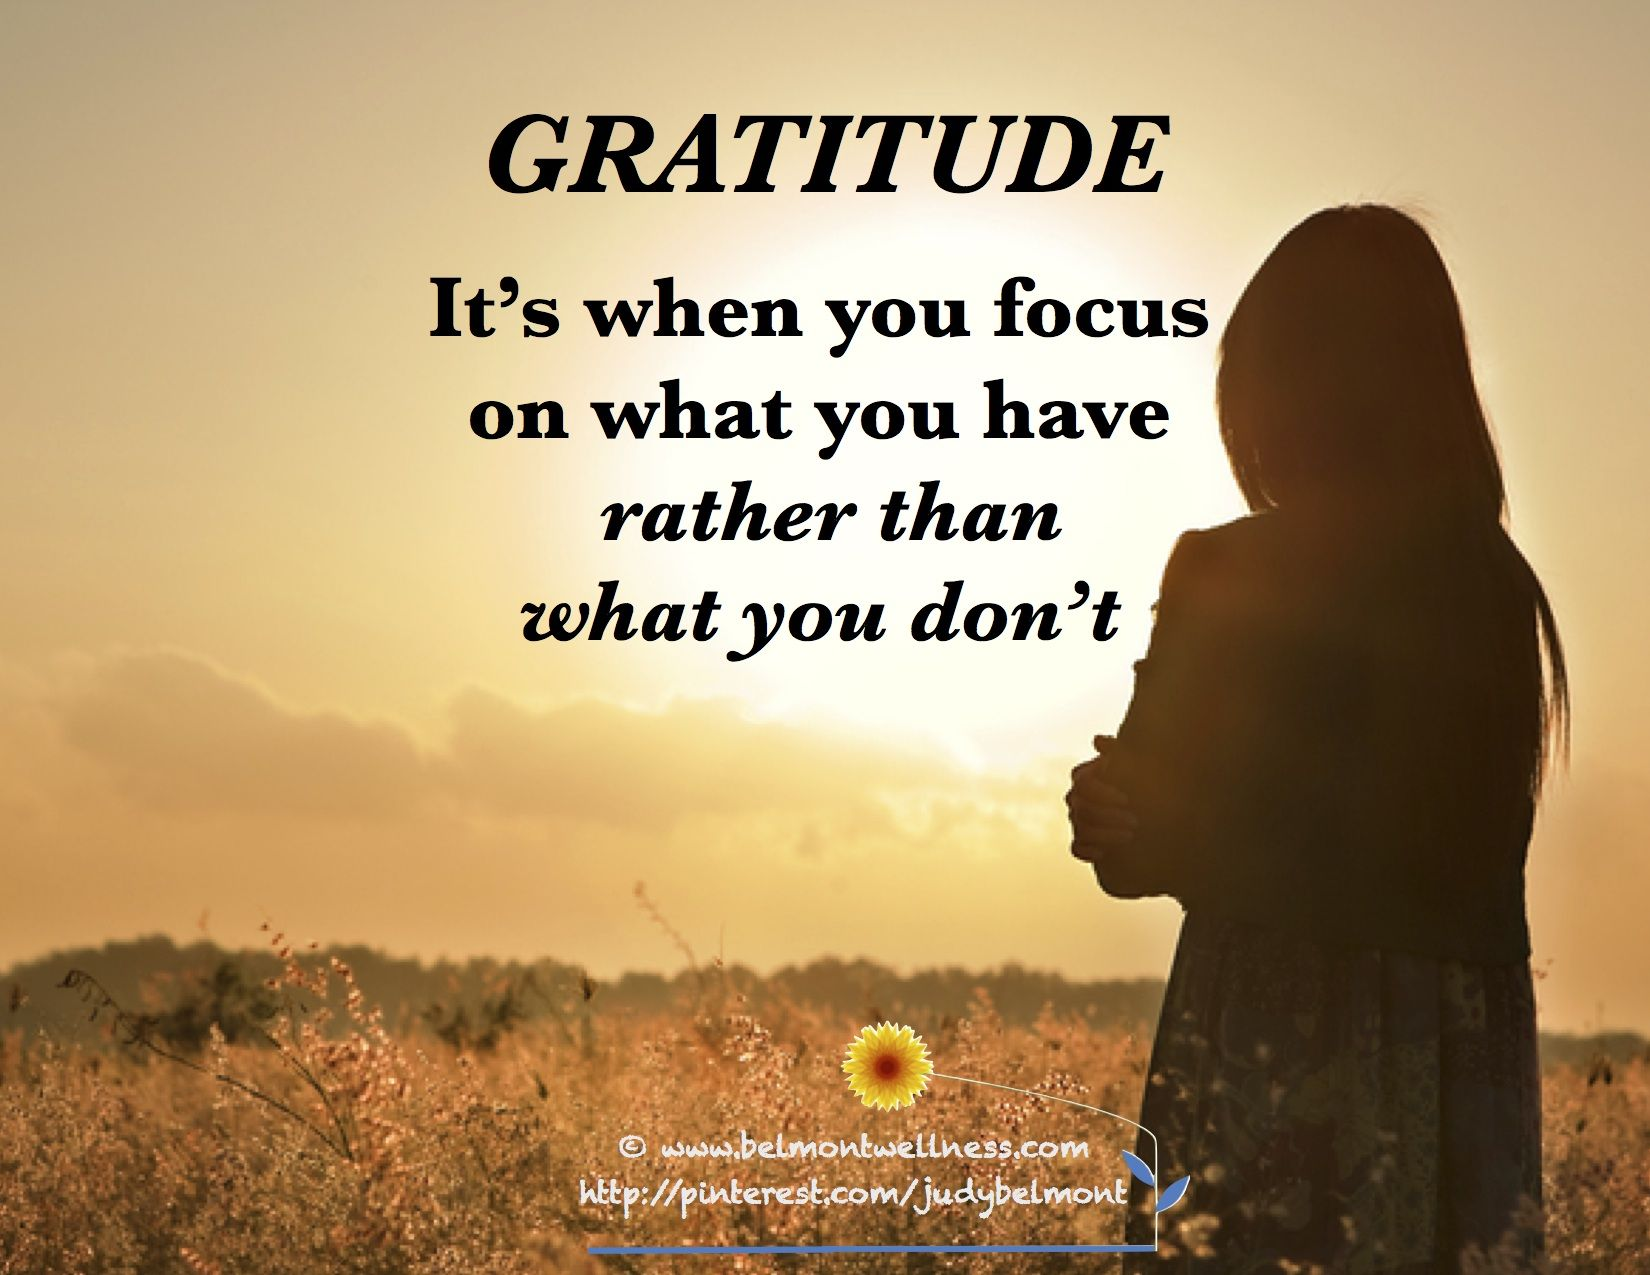 Inspirational Thoughts About Life Gratitude For All The Little Things In Our Life.sobriety